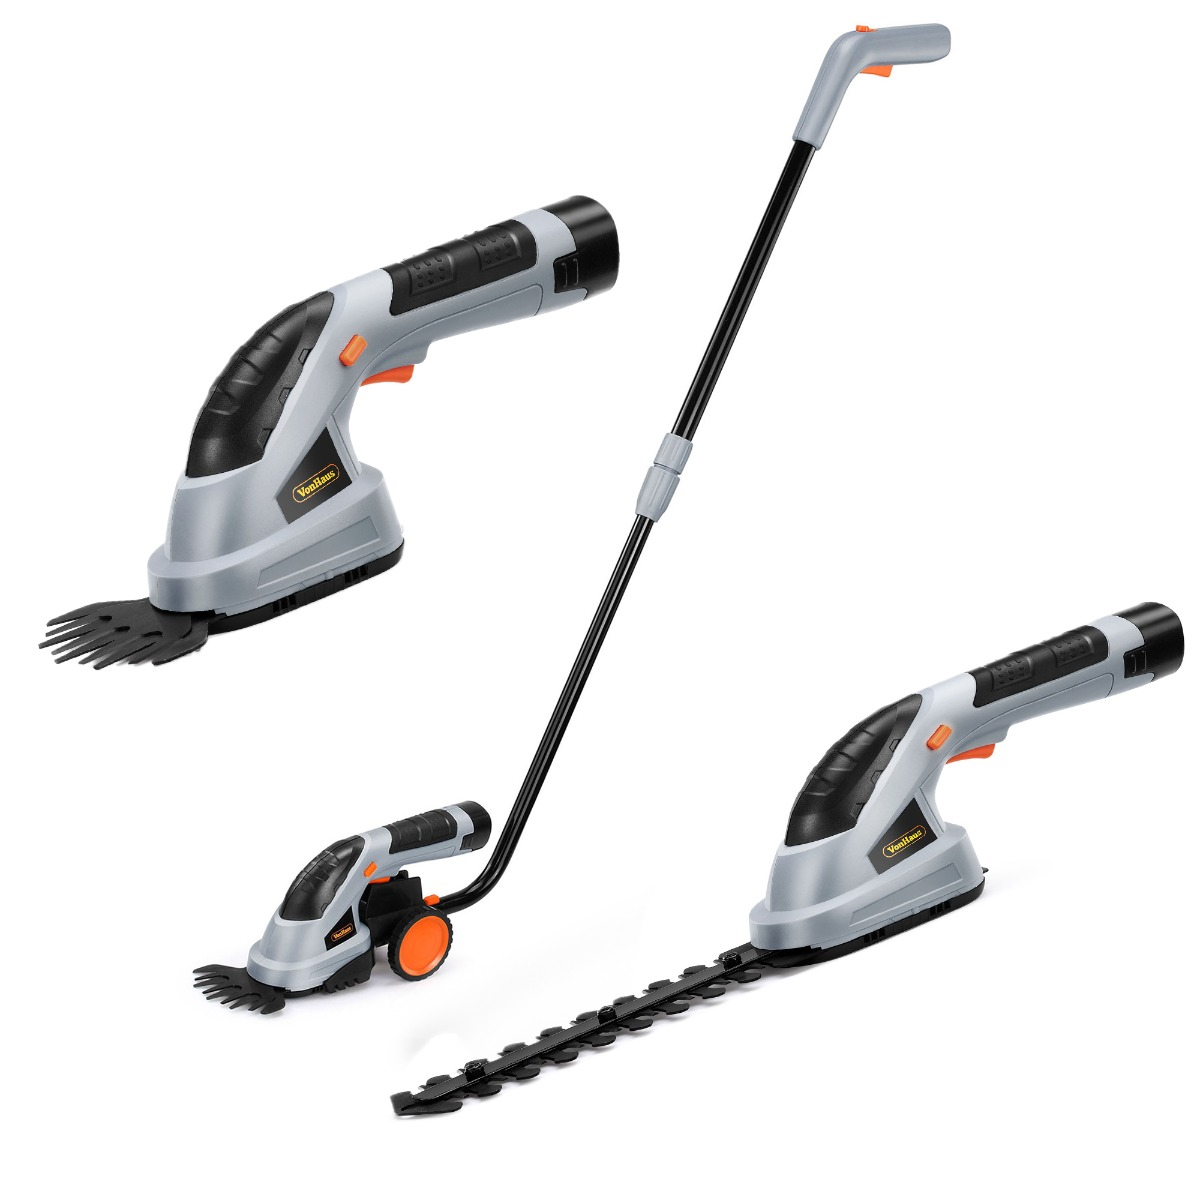 VonHaus 3-in-1 Cordless Grass Shears / Hedge Trimmer - Handheld & Wheeled Extension Handle